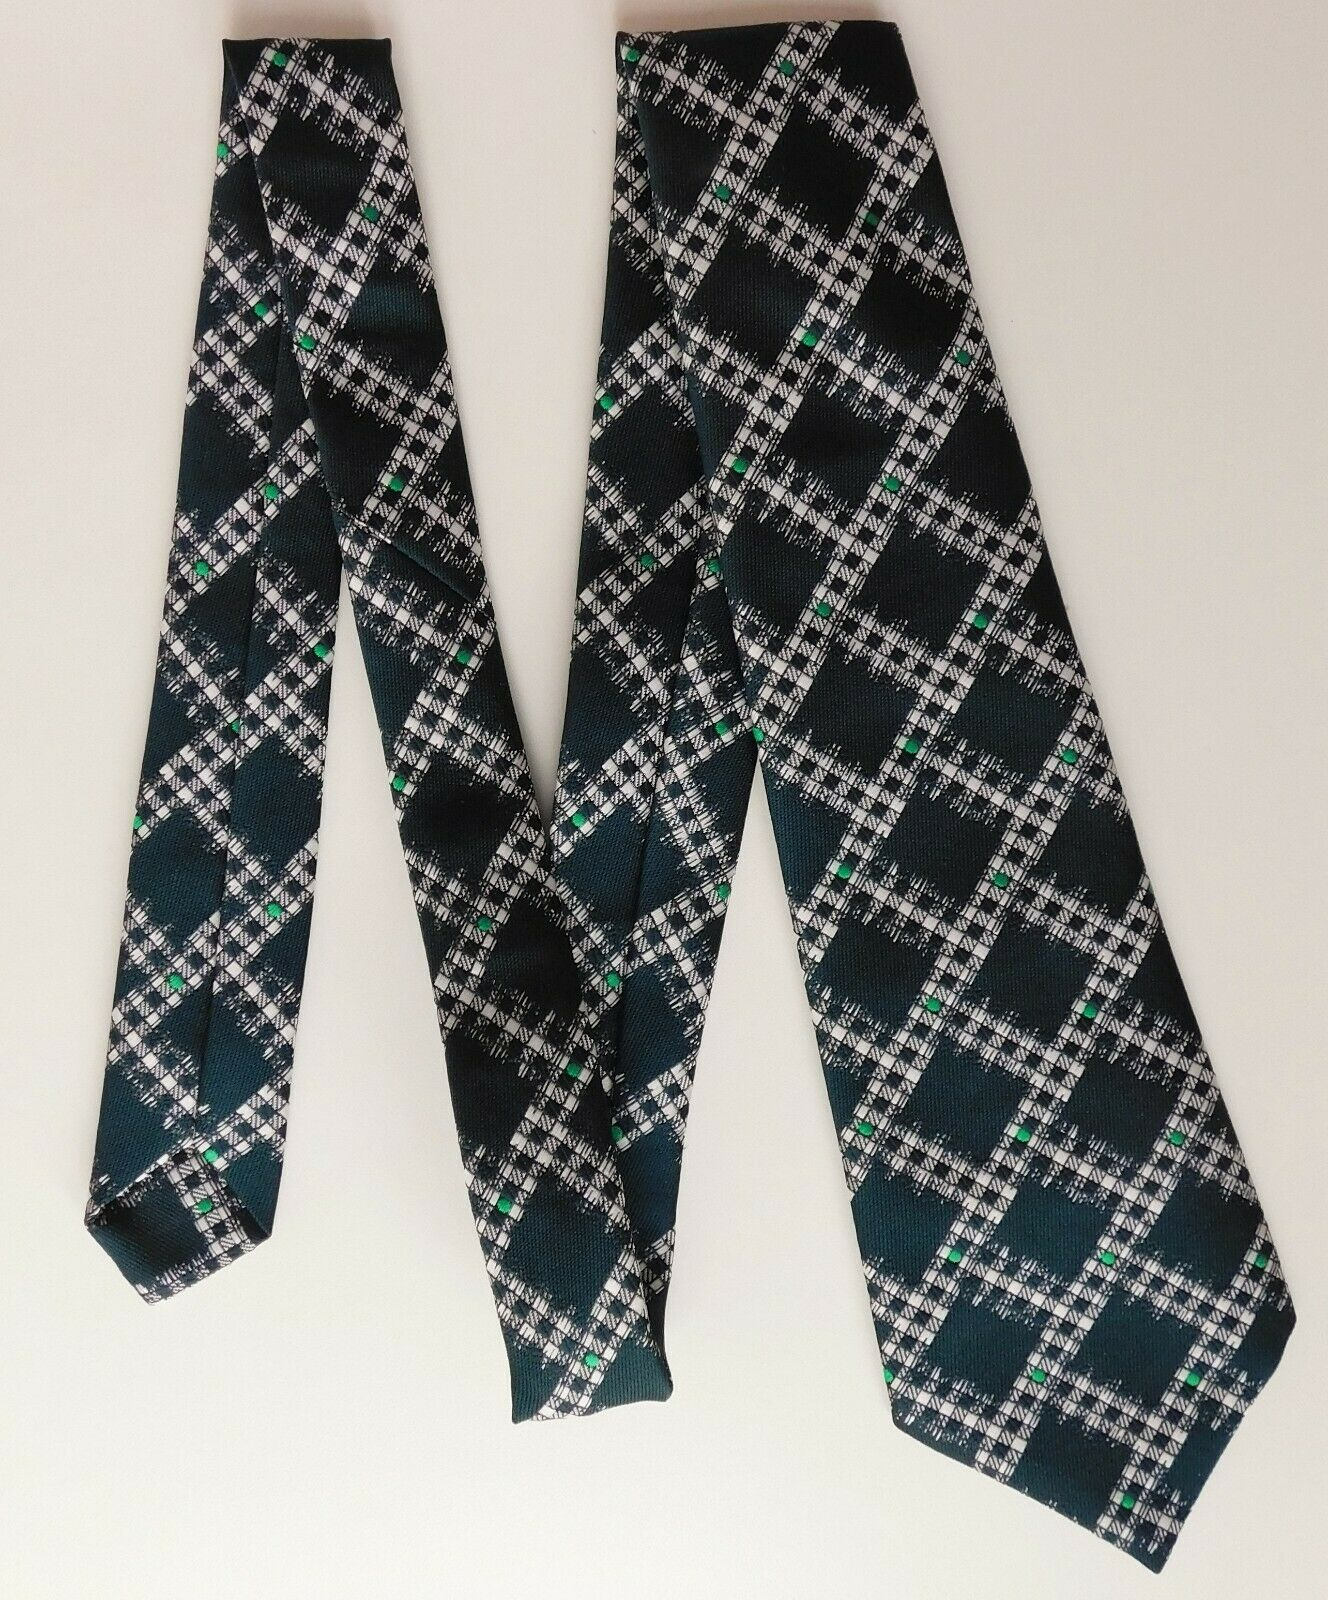 Green and white check tie by Theros vintage 1970s classic mens wear